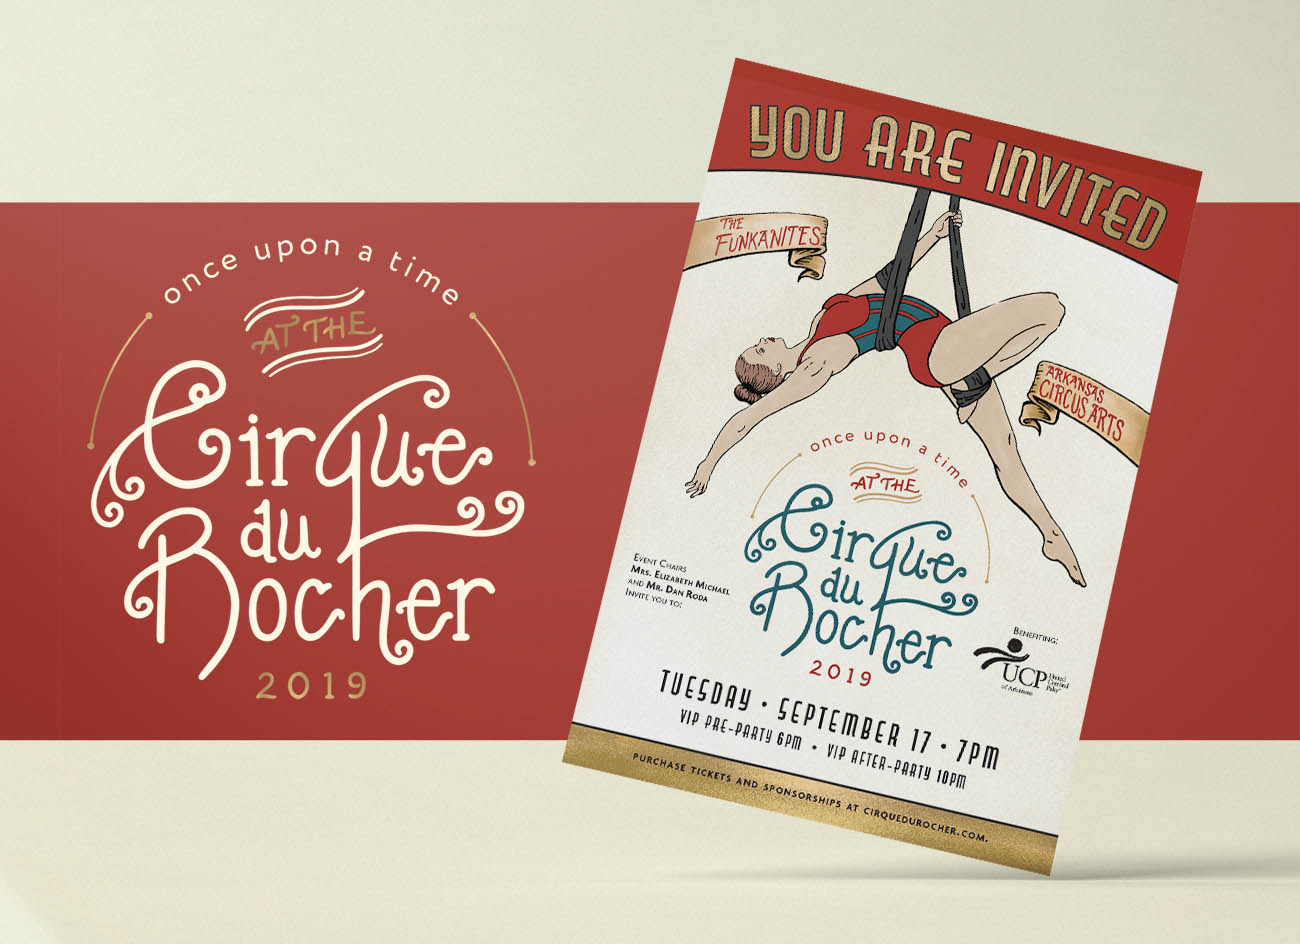 Initivation & Logo Design for Cirque du Rocher